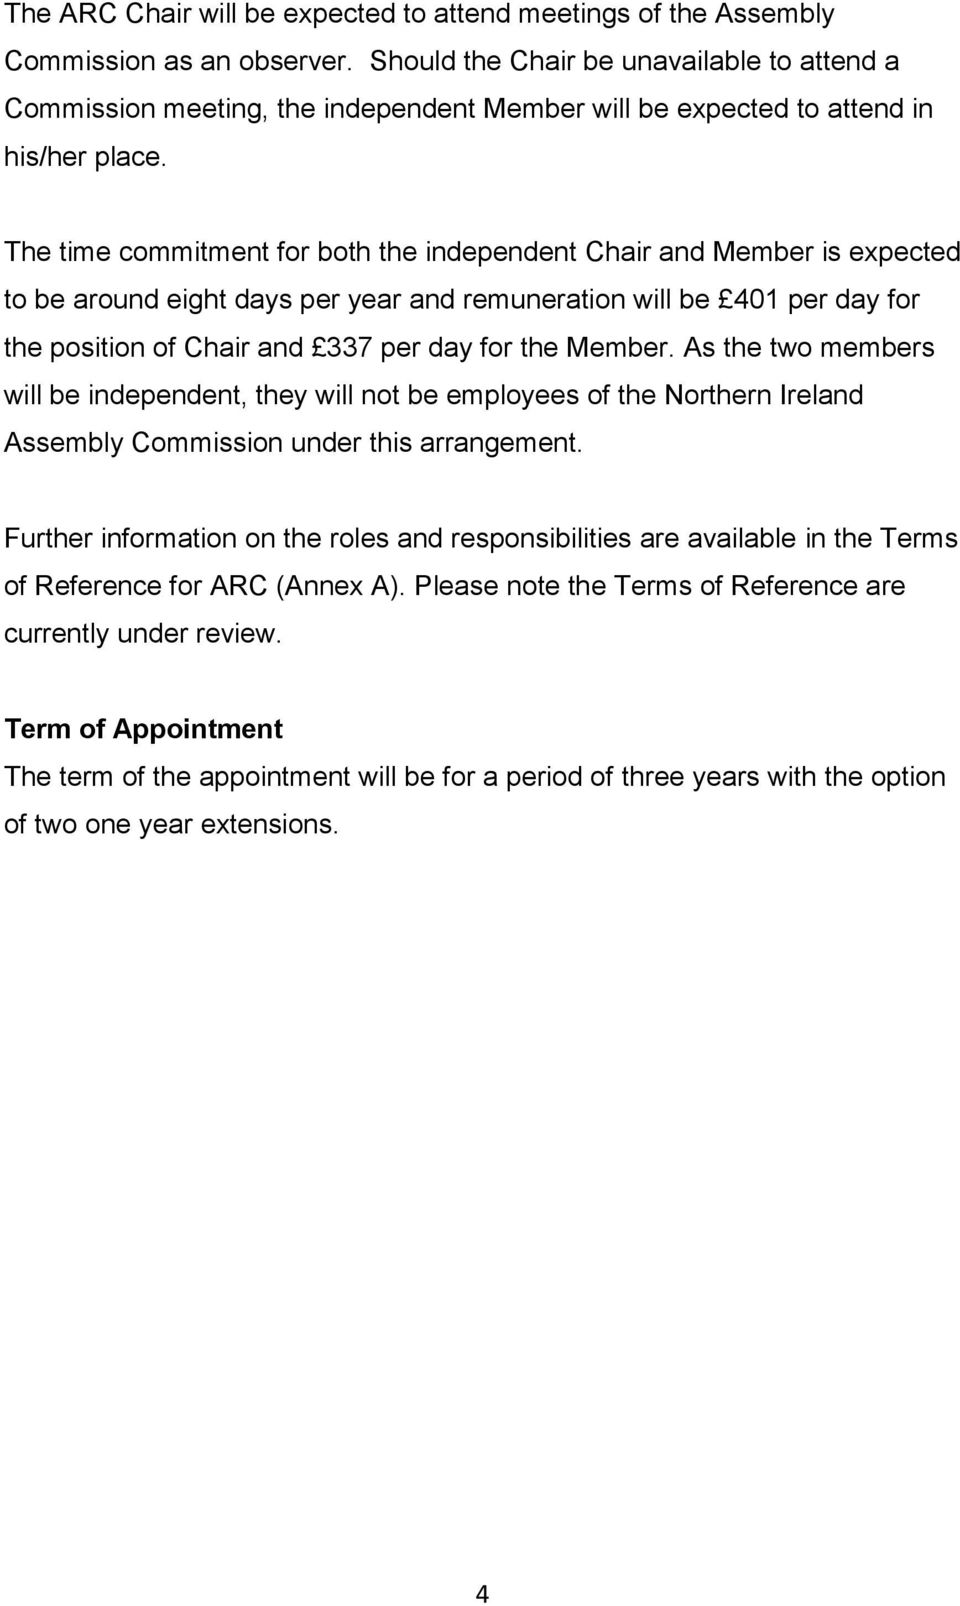 The time commitment for both the independent Chair and Member is expected to be around eight days per year and remuneration will be 401 per day for the position of Chair and 337 per day for the